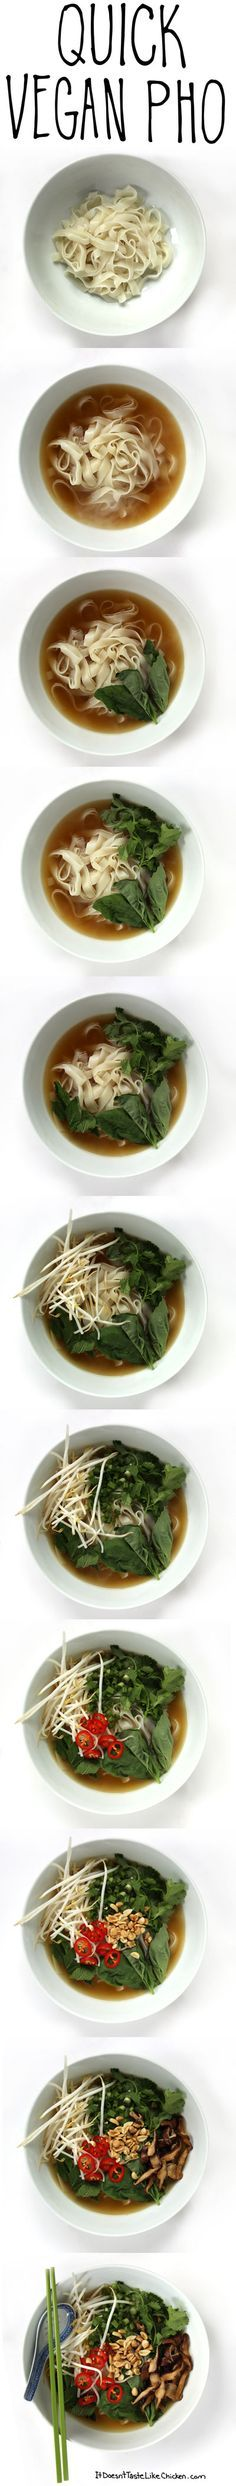 Quick Vegan Pho. 30 minutes to make. Very nutritious. Great for fighting away winter colds! #itdoesnttastelikechicken ≈≈★★★≈≈ P.S.: ARE YOU or your friends VEGAN(S)? Look at this vegan CUSTOM NAME SHIRTS and brand them with your (their) name(s). Great discounts available: https://shirtsheaven.com/vegan